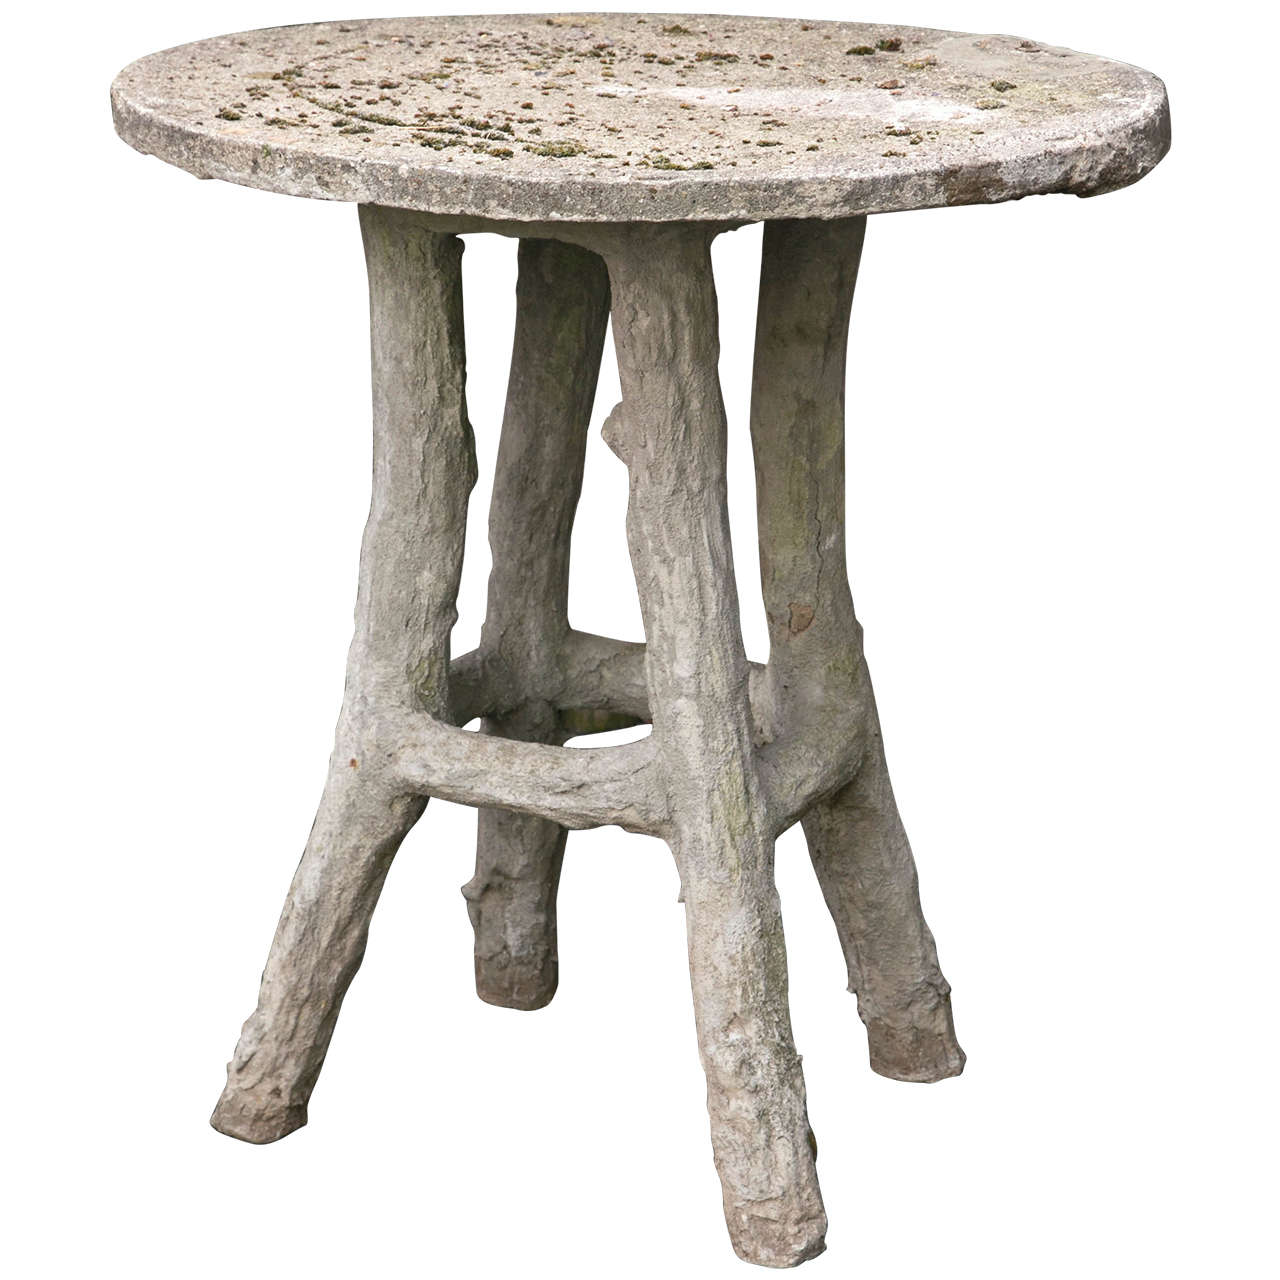 Faux Bois Bistro Table For Sale at 1stdibs